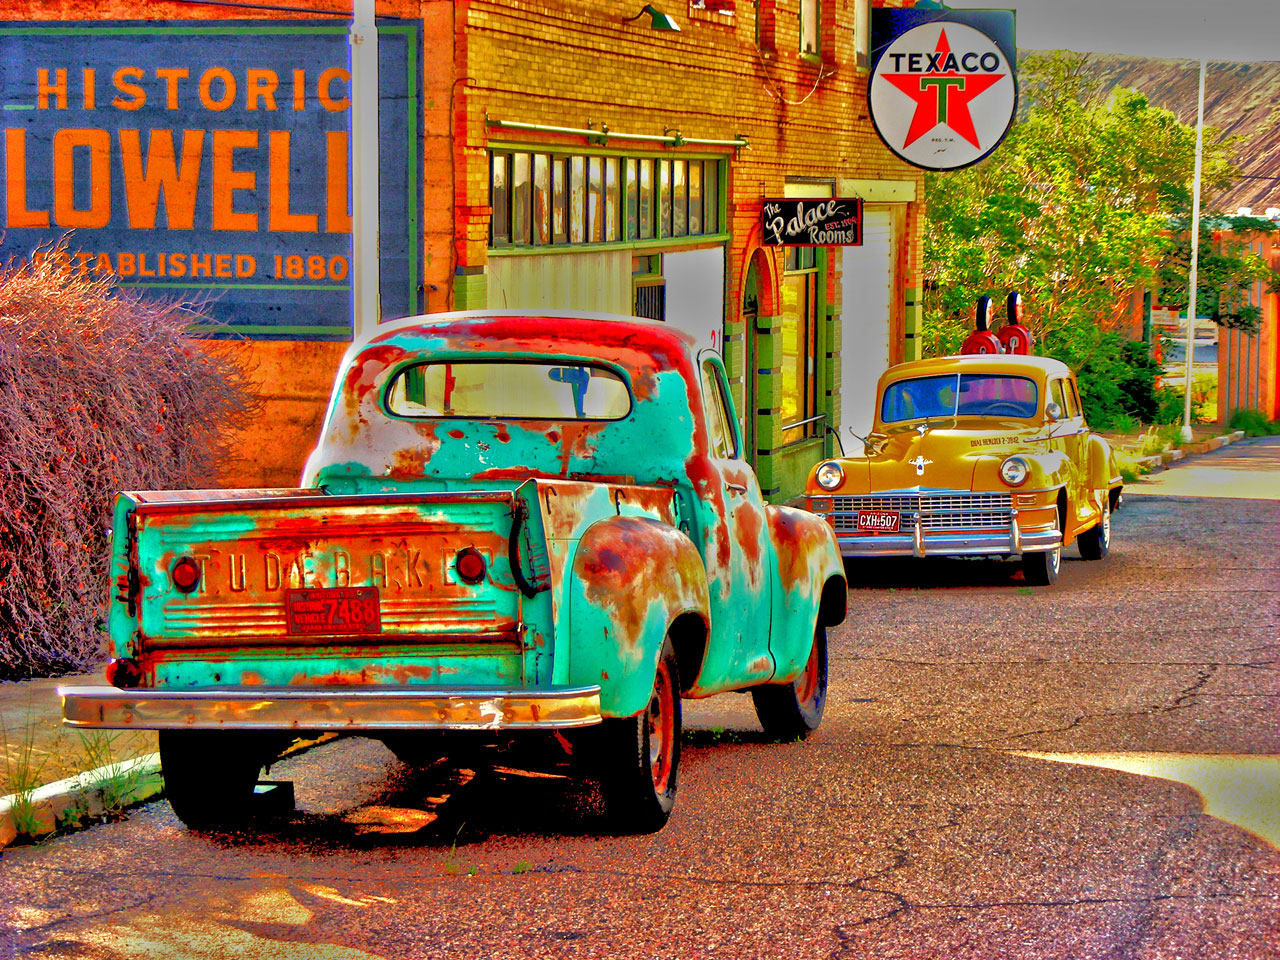 bisbee-car-and-truck.jpg